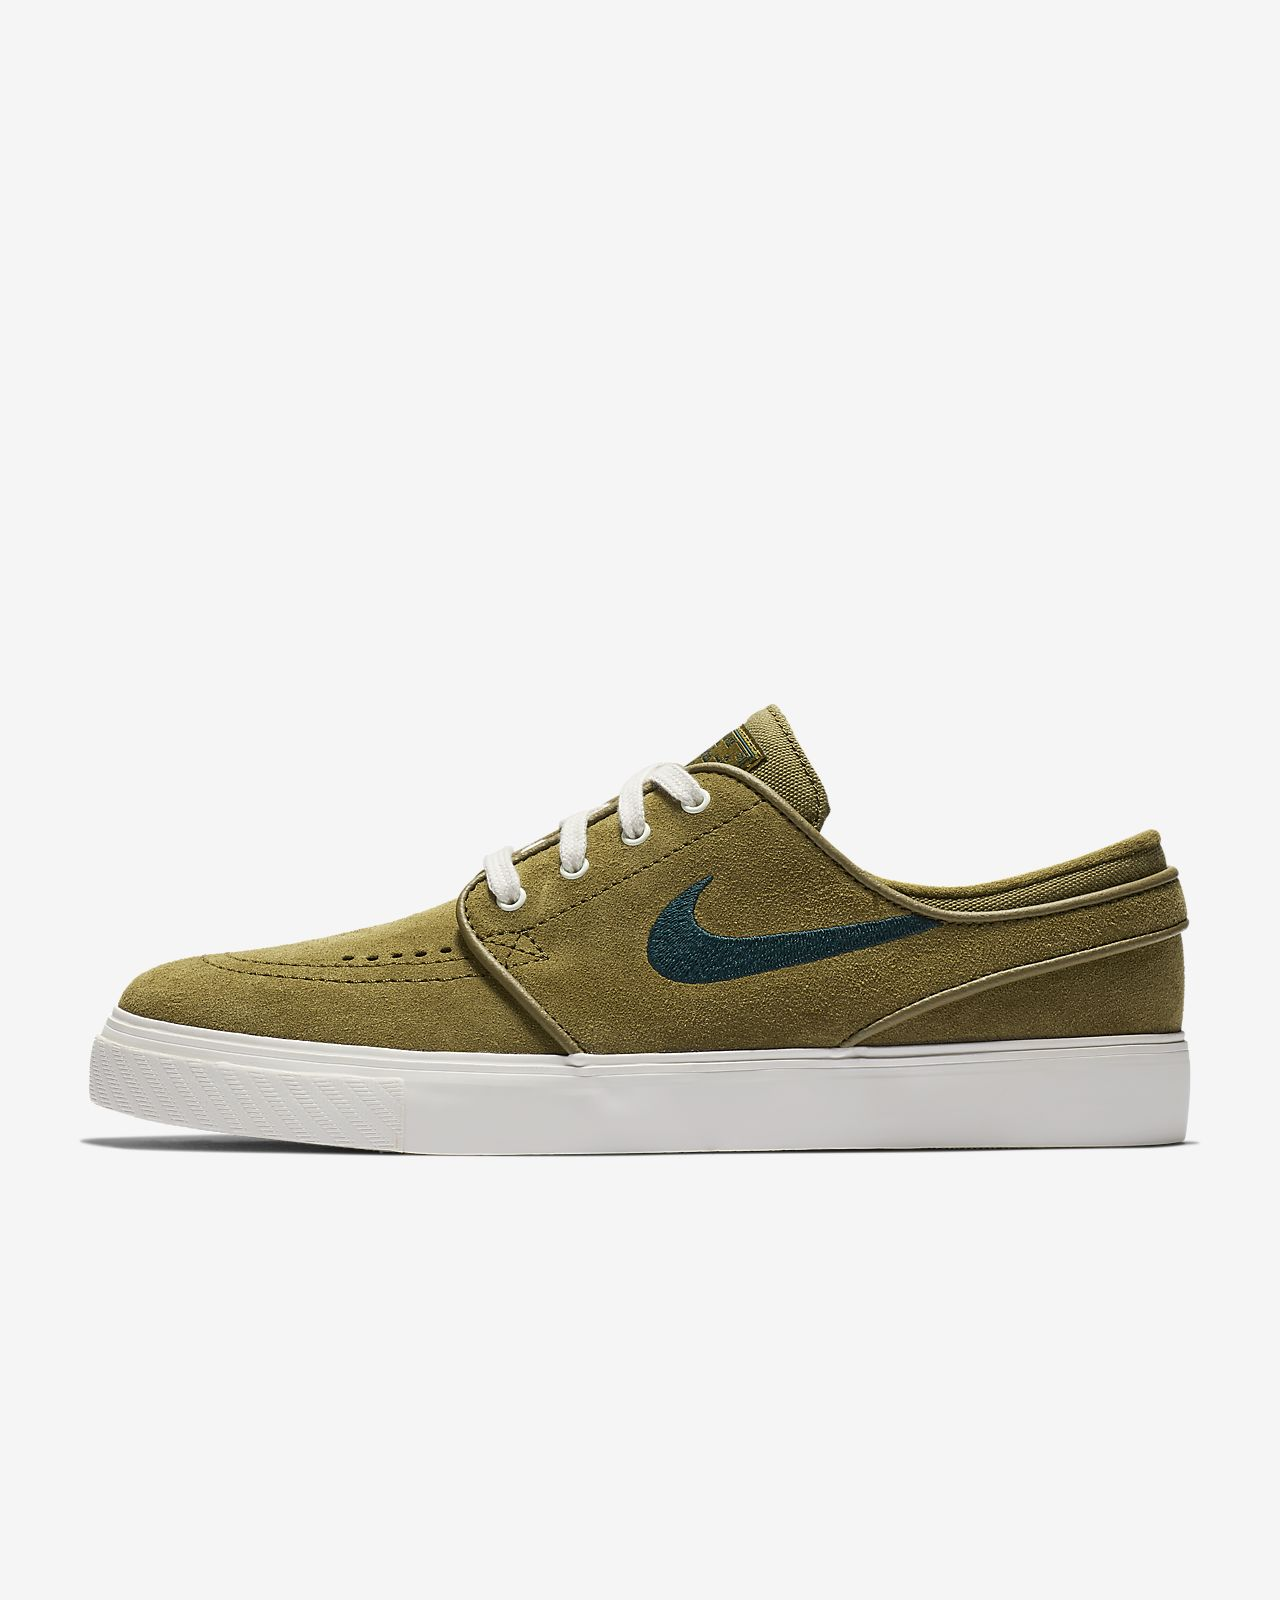 Damen Schuhe | Nike SB Zoom Stefan Janoski Canvas Summit